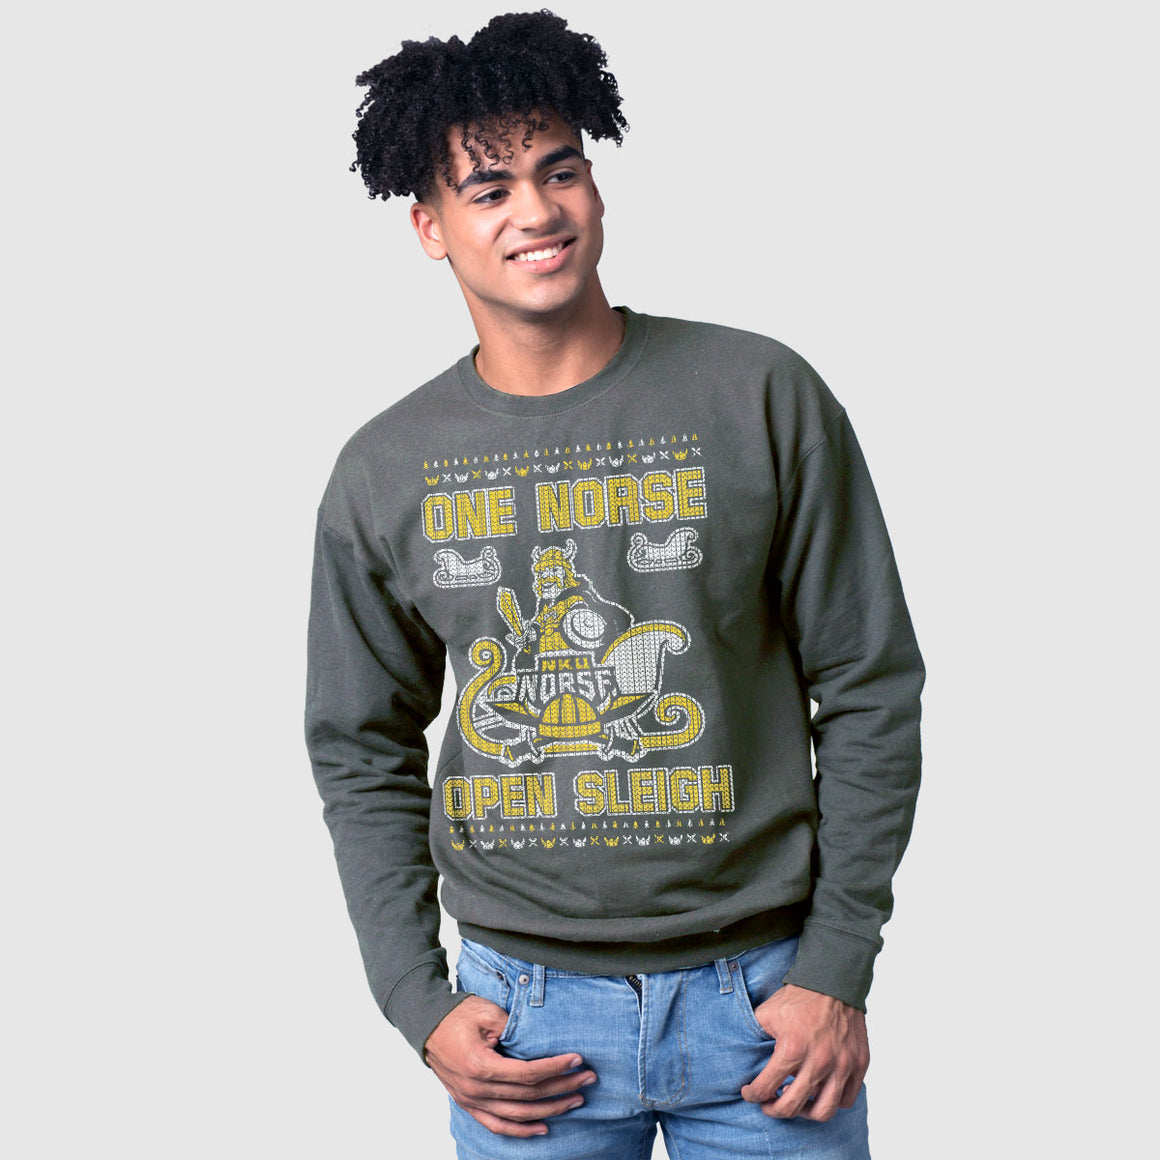 NKU One Norse Open Sleigh Ugly Christmas Sweatshirt - Cincy Shirts